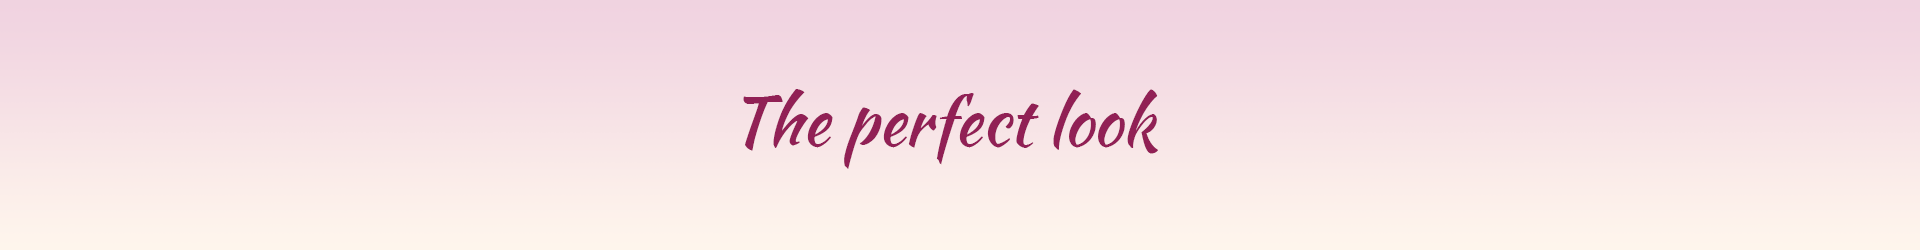 the perfect look באנר